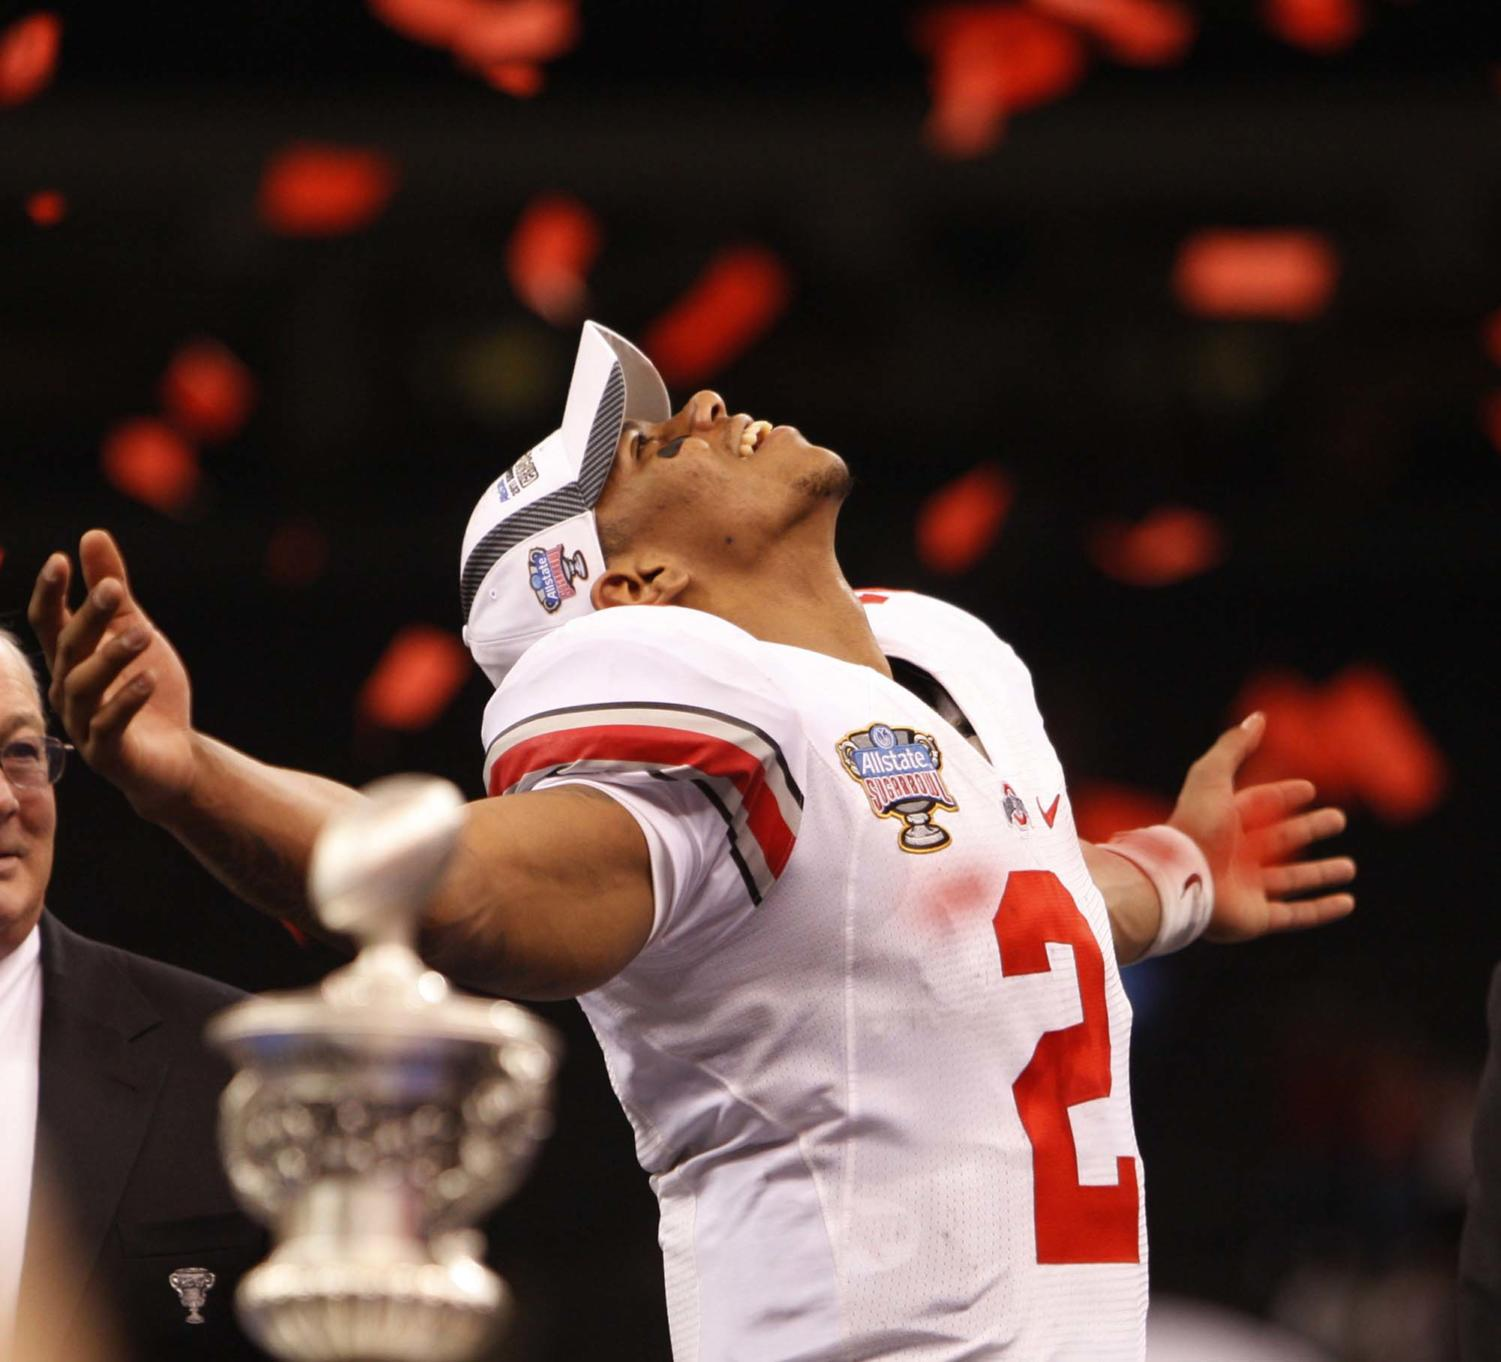 Ohio State quarterback Terrelle Pryor (2) watches the confetti swirl around him Sugar Bowl at the Louisiana Superdome in New Orleans, Louisiana, on Tuesday, January 4, 2011.